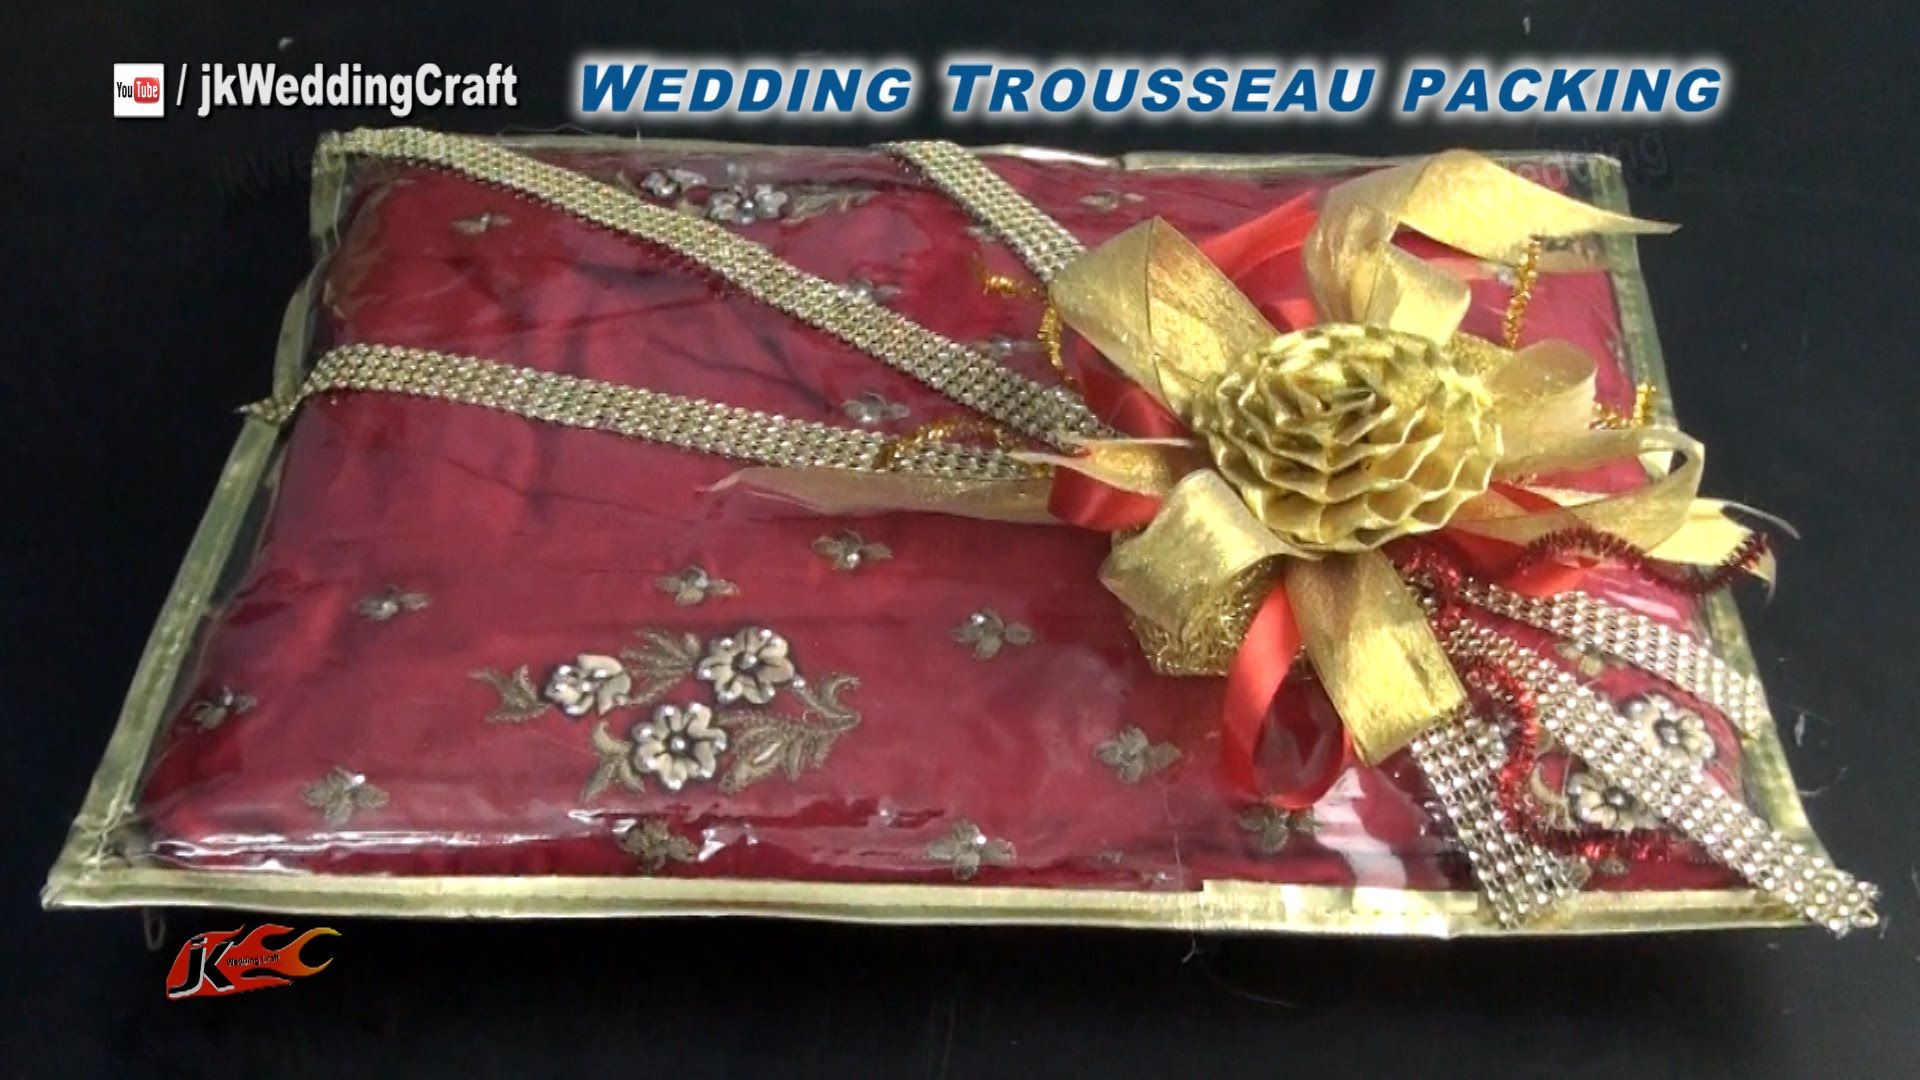 Creative Gift Packing Ideas For Wedding Trousseau How To Pack Indian Dress Jk Wedding Wedding Gifts Packaging Bridal Gift Wrapping Ideas Trousseau Packing